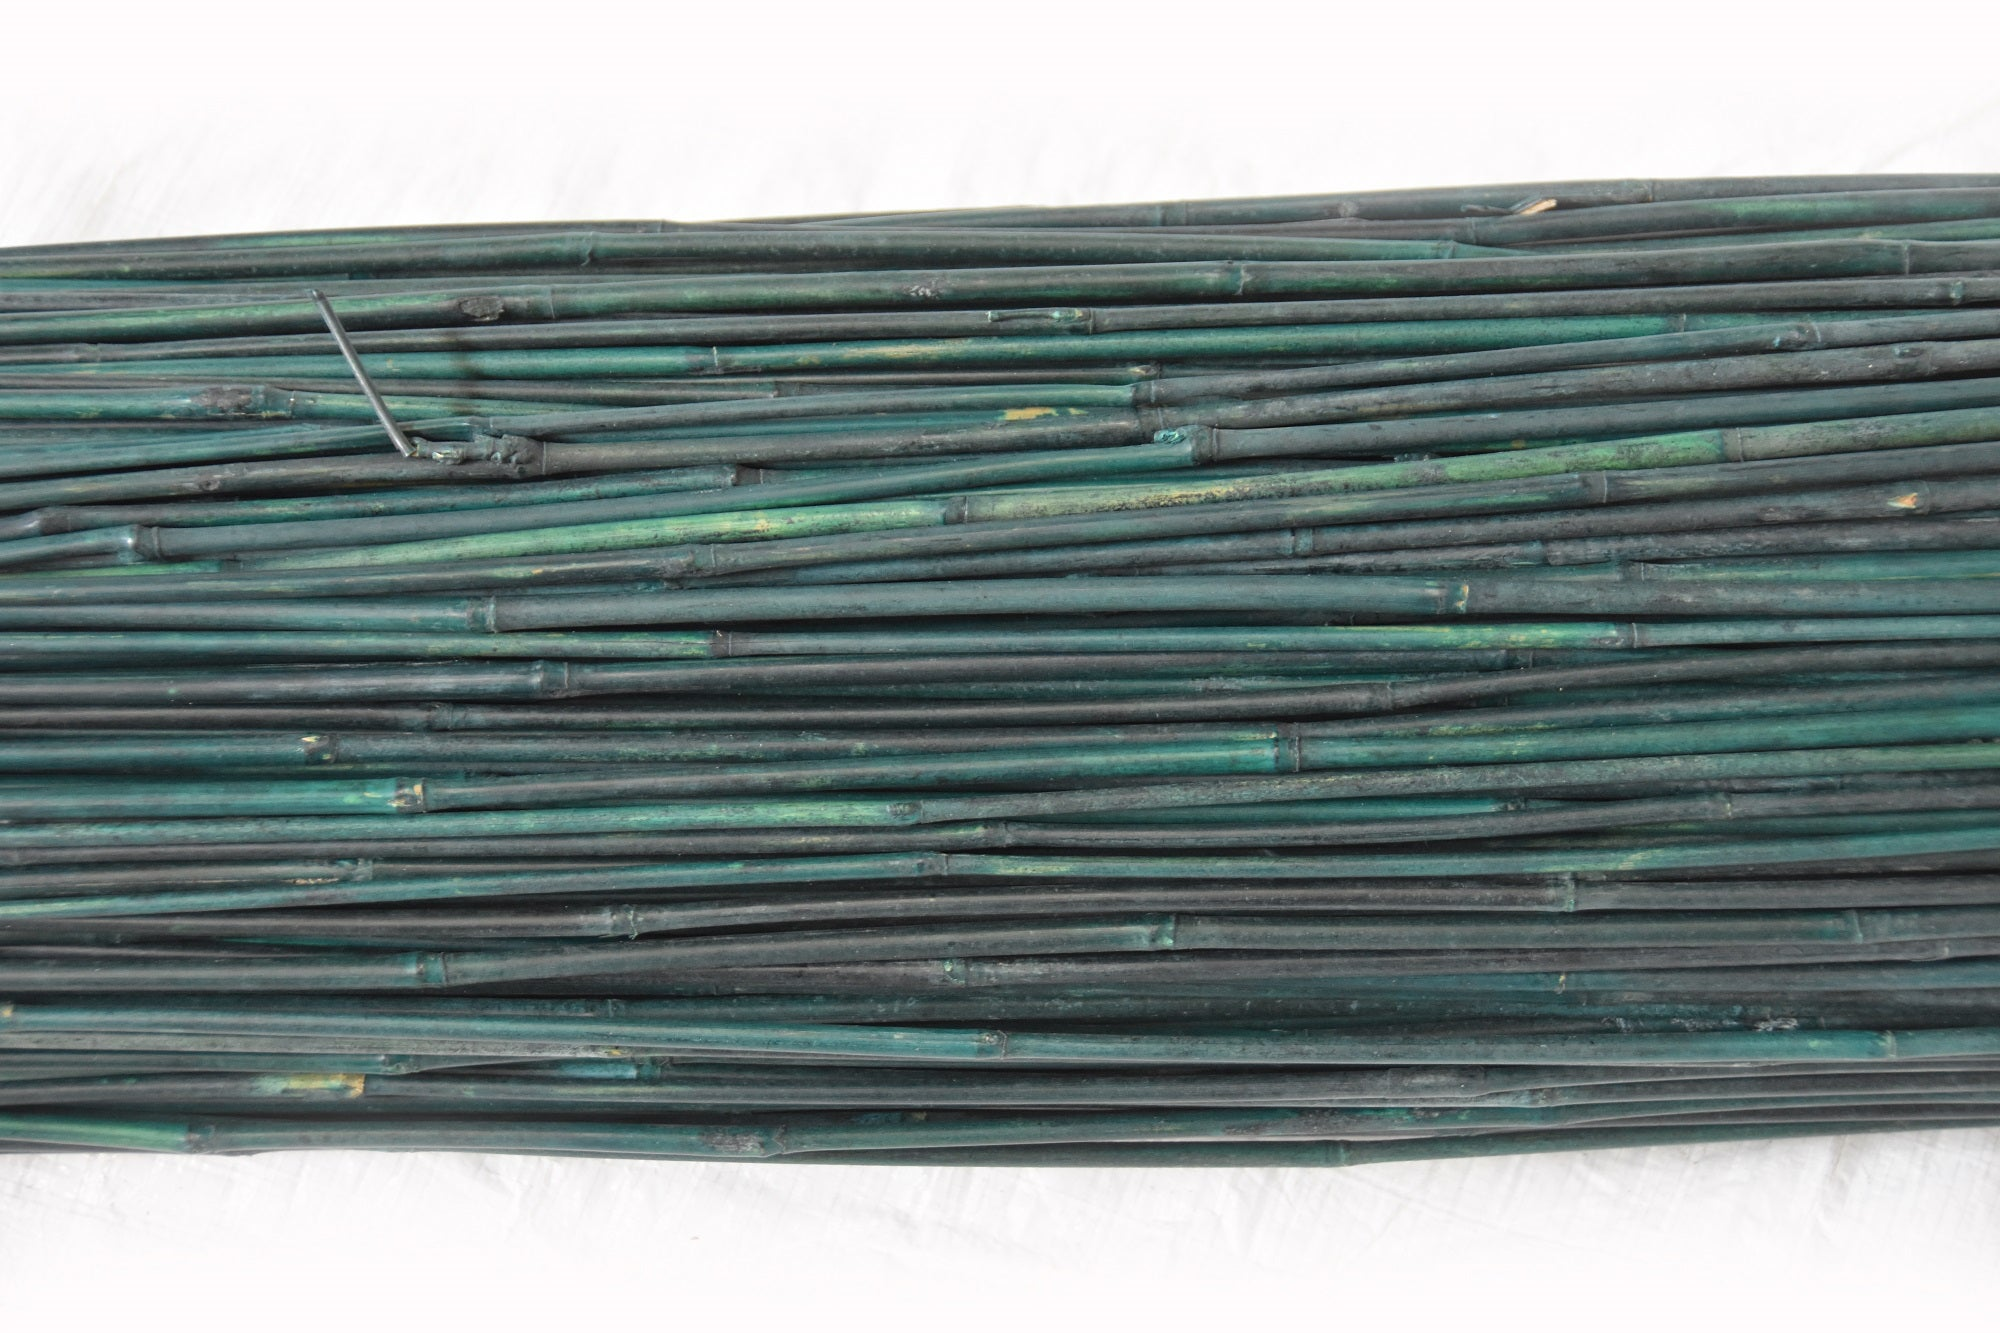 Dyed Green Bamboo Stakes 4'L x 6-8 mm - Bundle of 500 - Bamboo Toronto Store